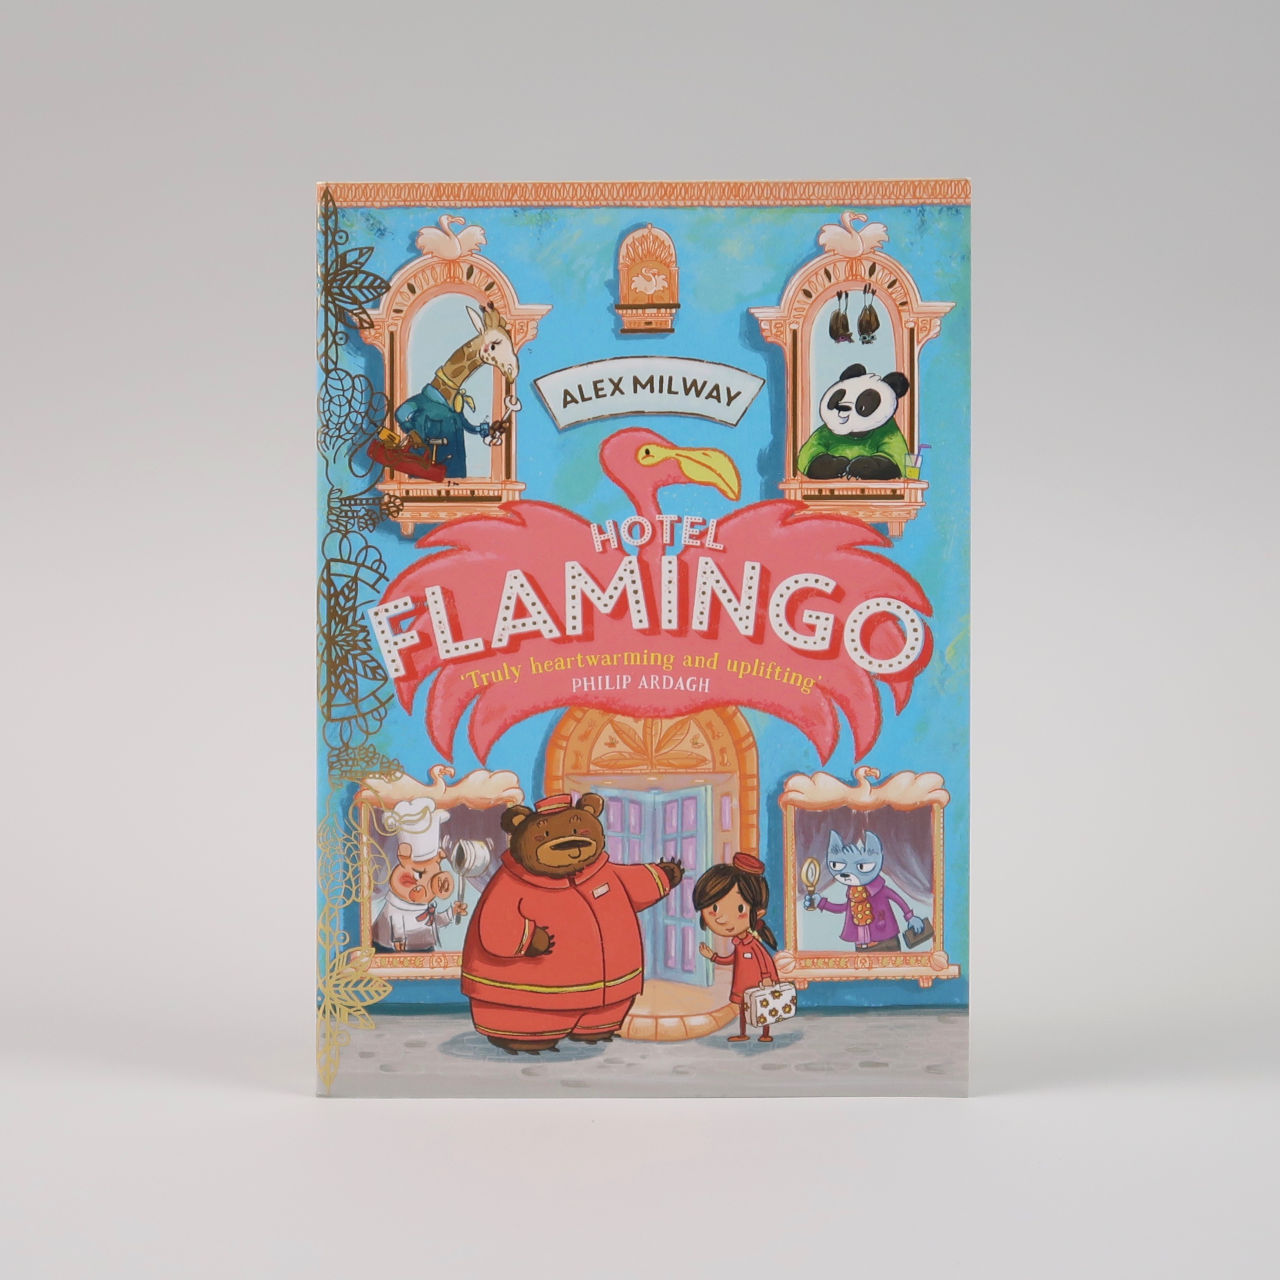 Hotel Flamingo - Alex Milway